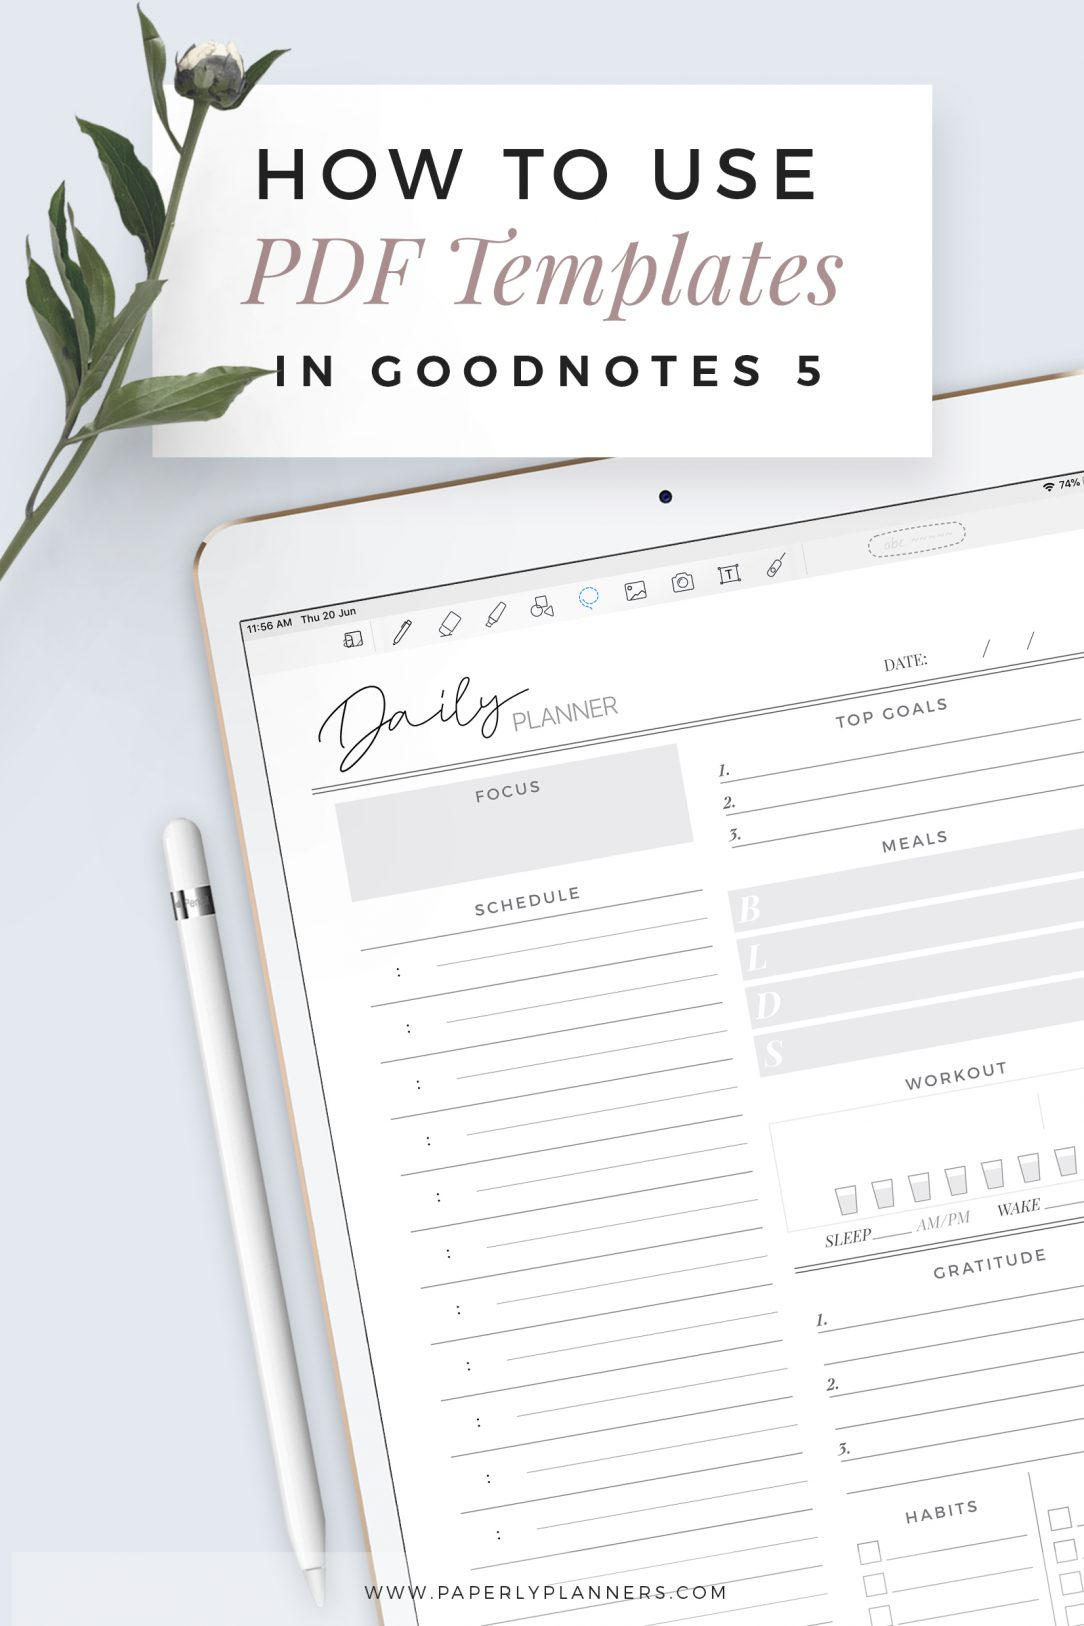 How to use PDF template in Goodnotes 5 App